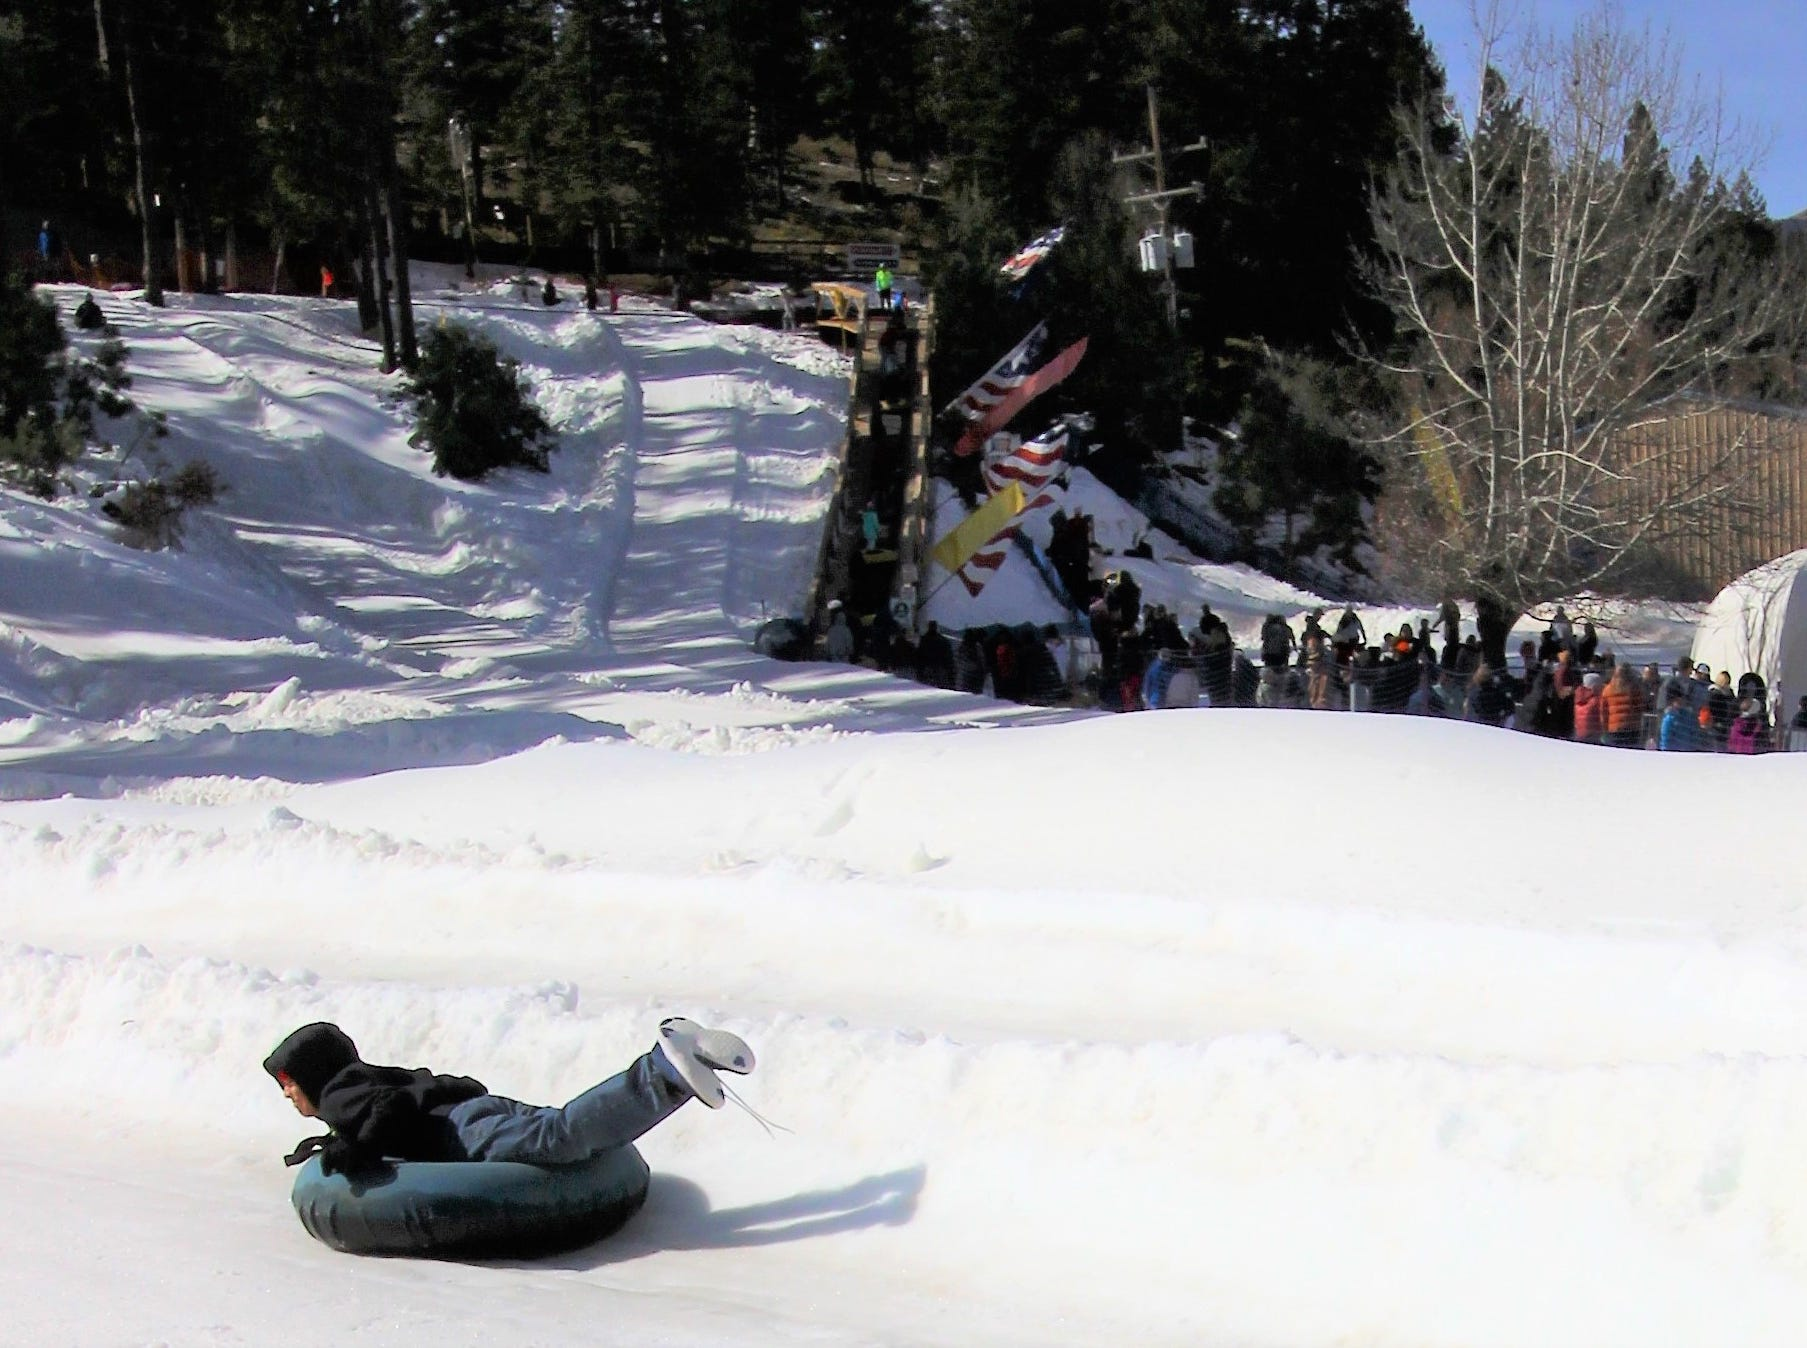 Swishing and twisting down the snowy slopes at Ruidoso Winter Park, this teen enjoys all the thrills of snow tubing.